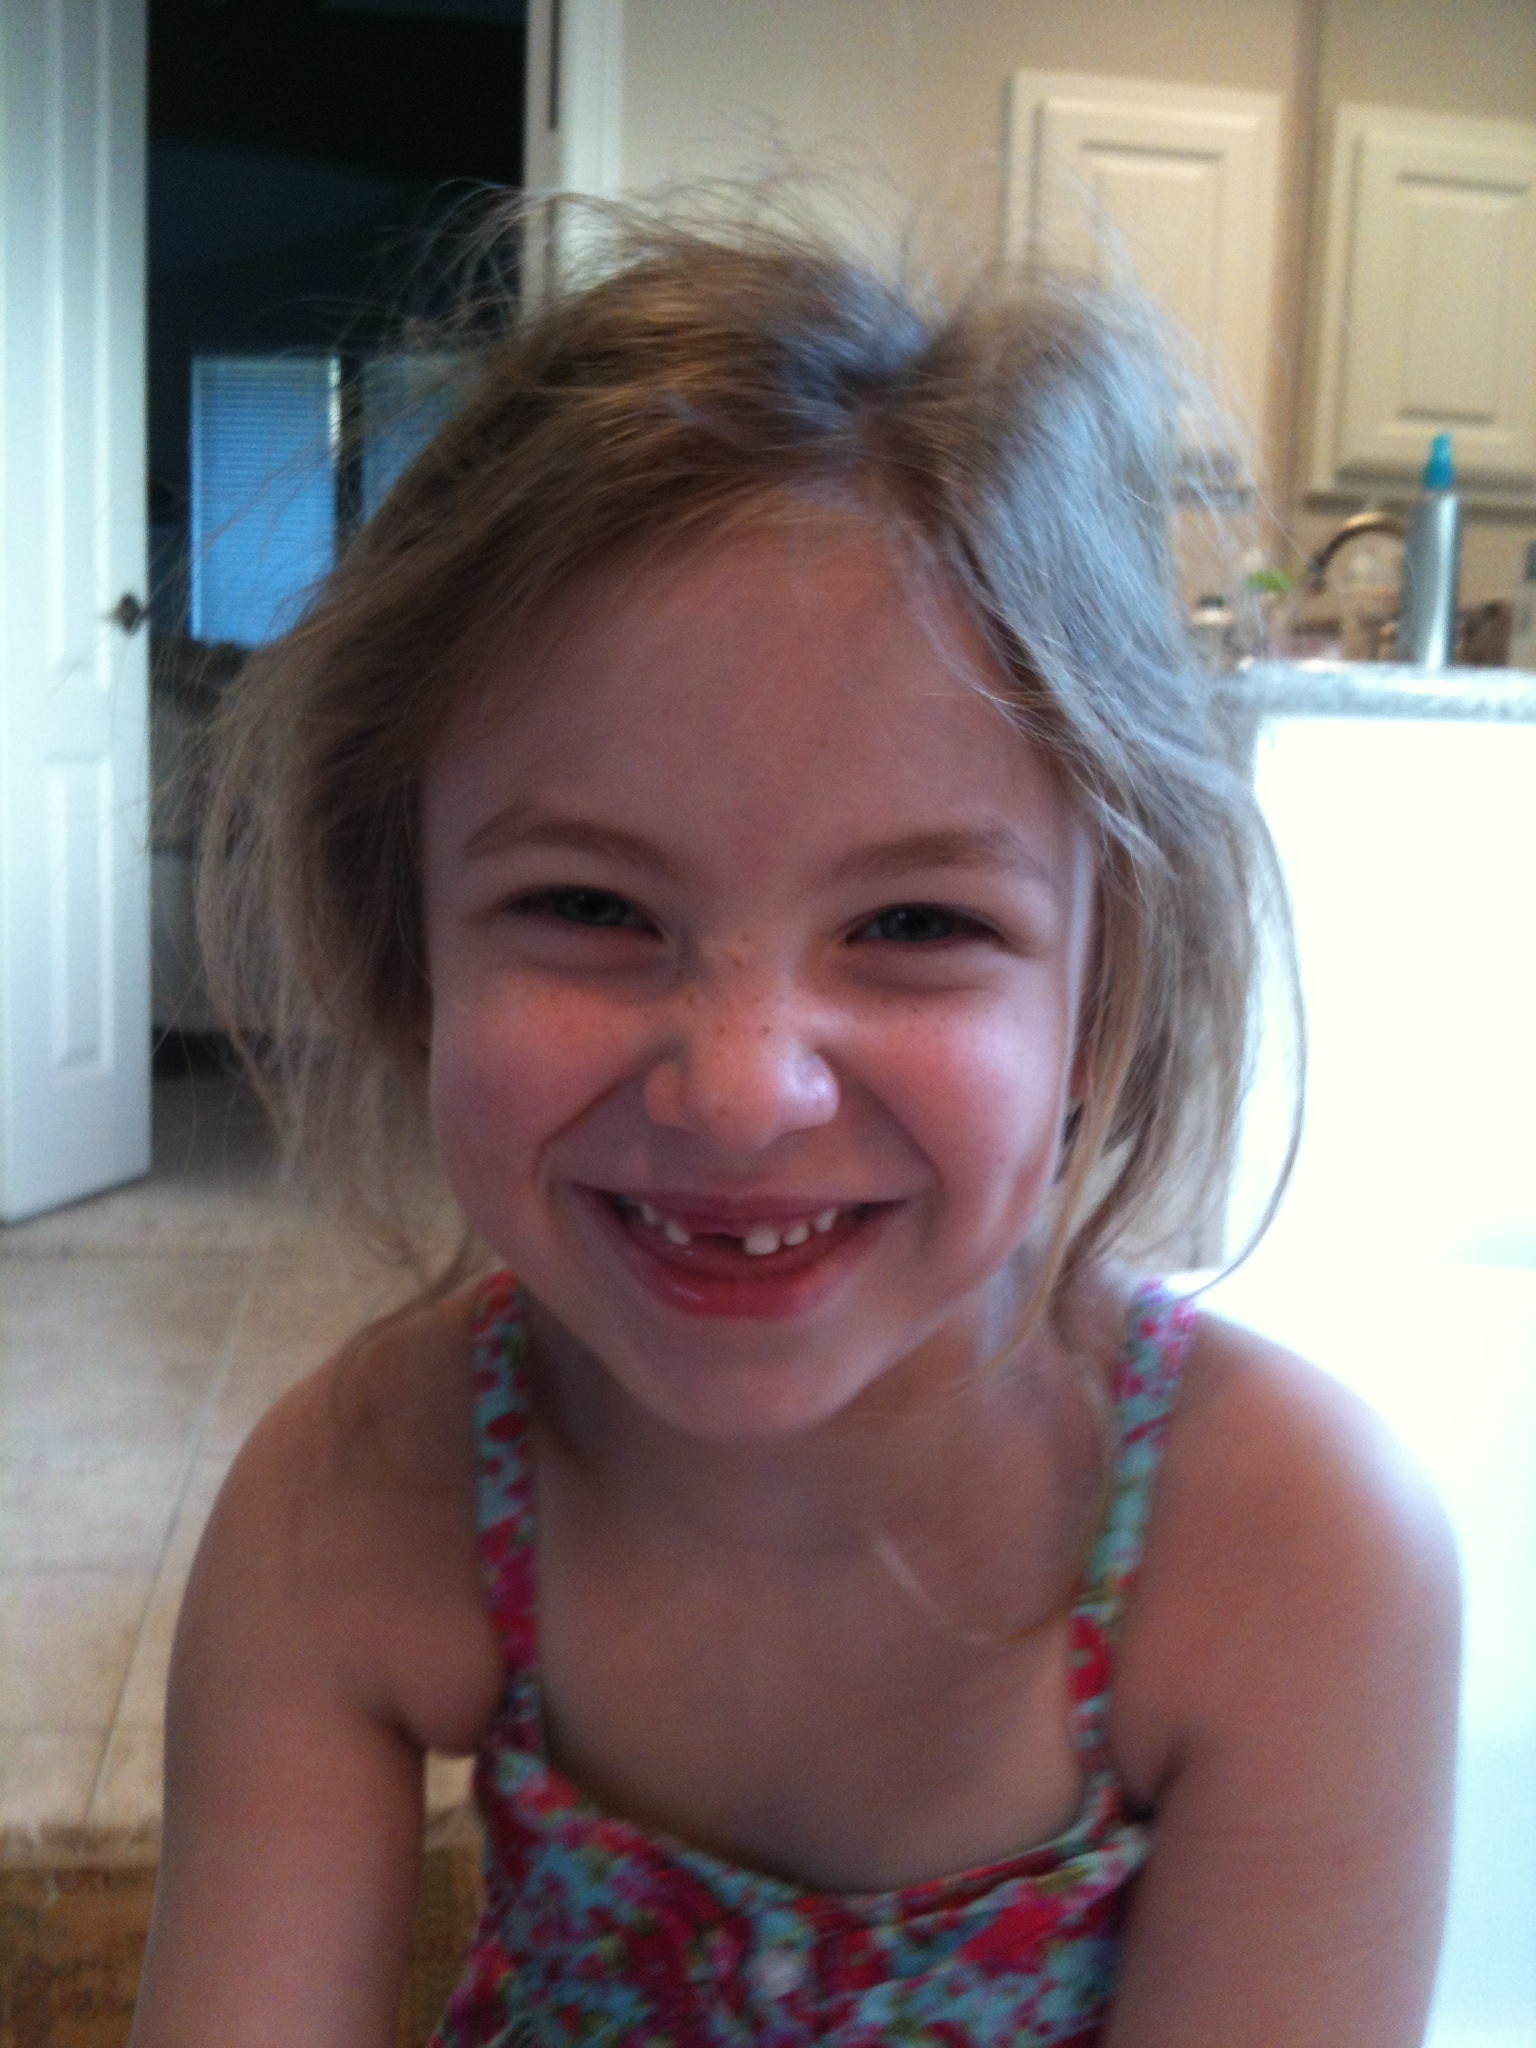 Stream of consciousness: I'm smitten with my daughter